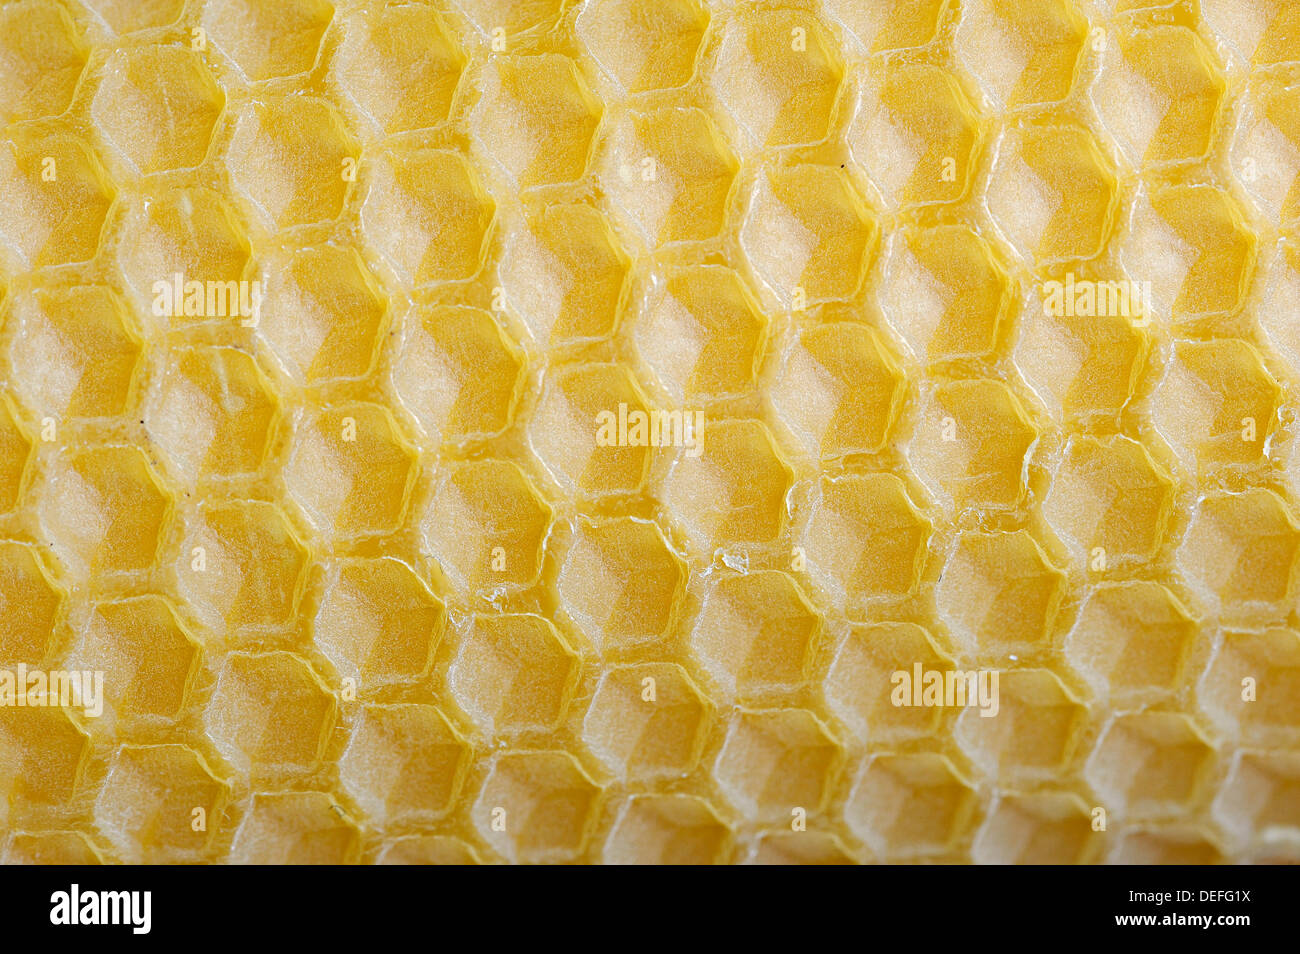 Candle made of beeswax, detail, Germany - Stock Image